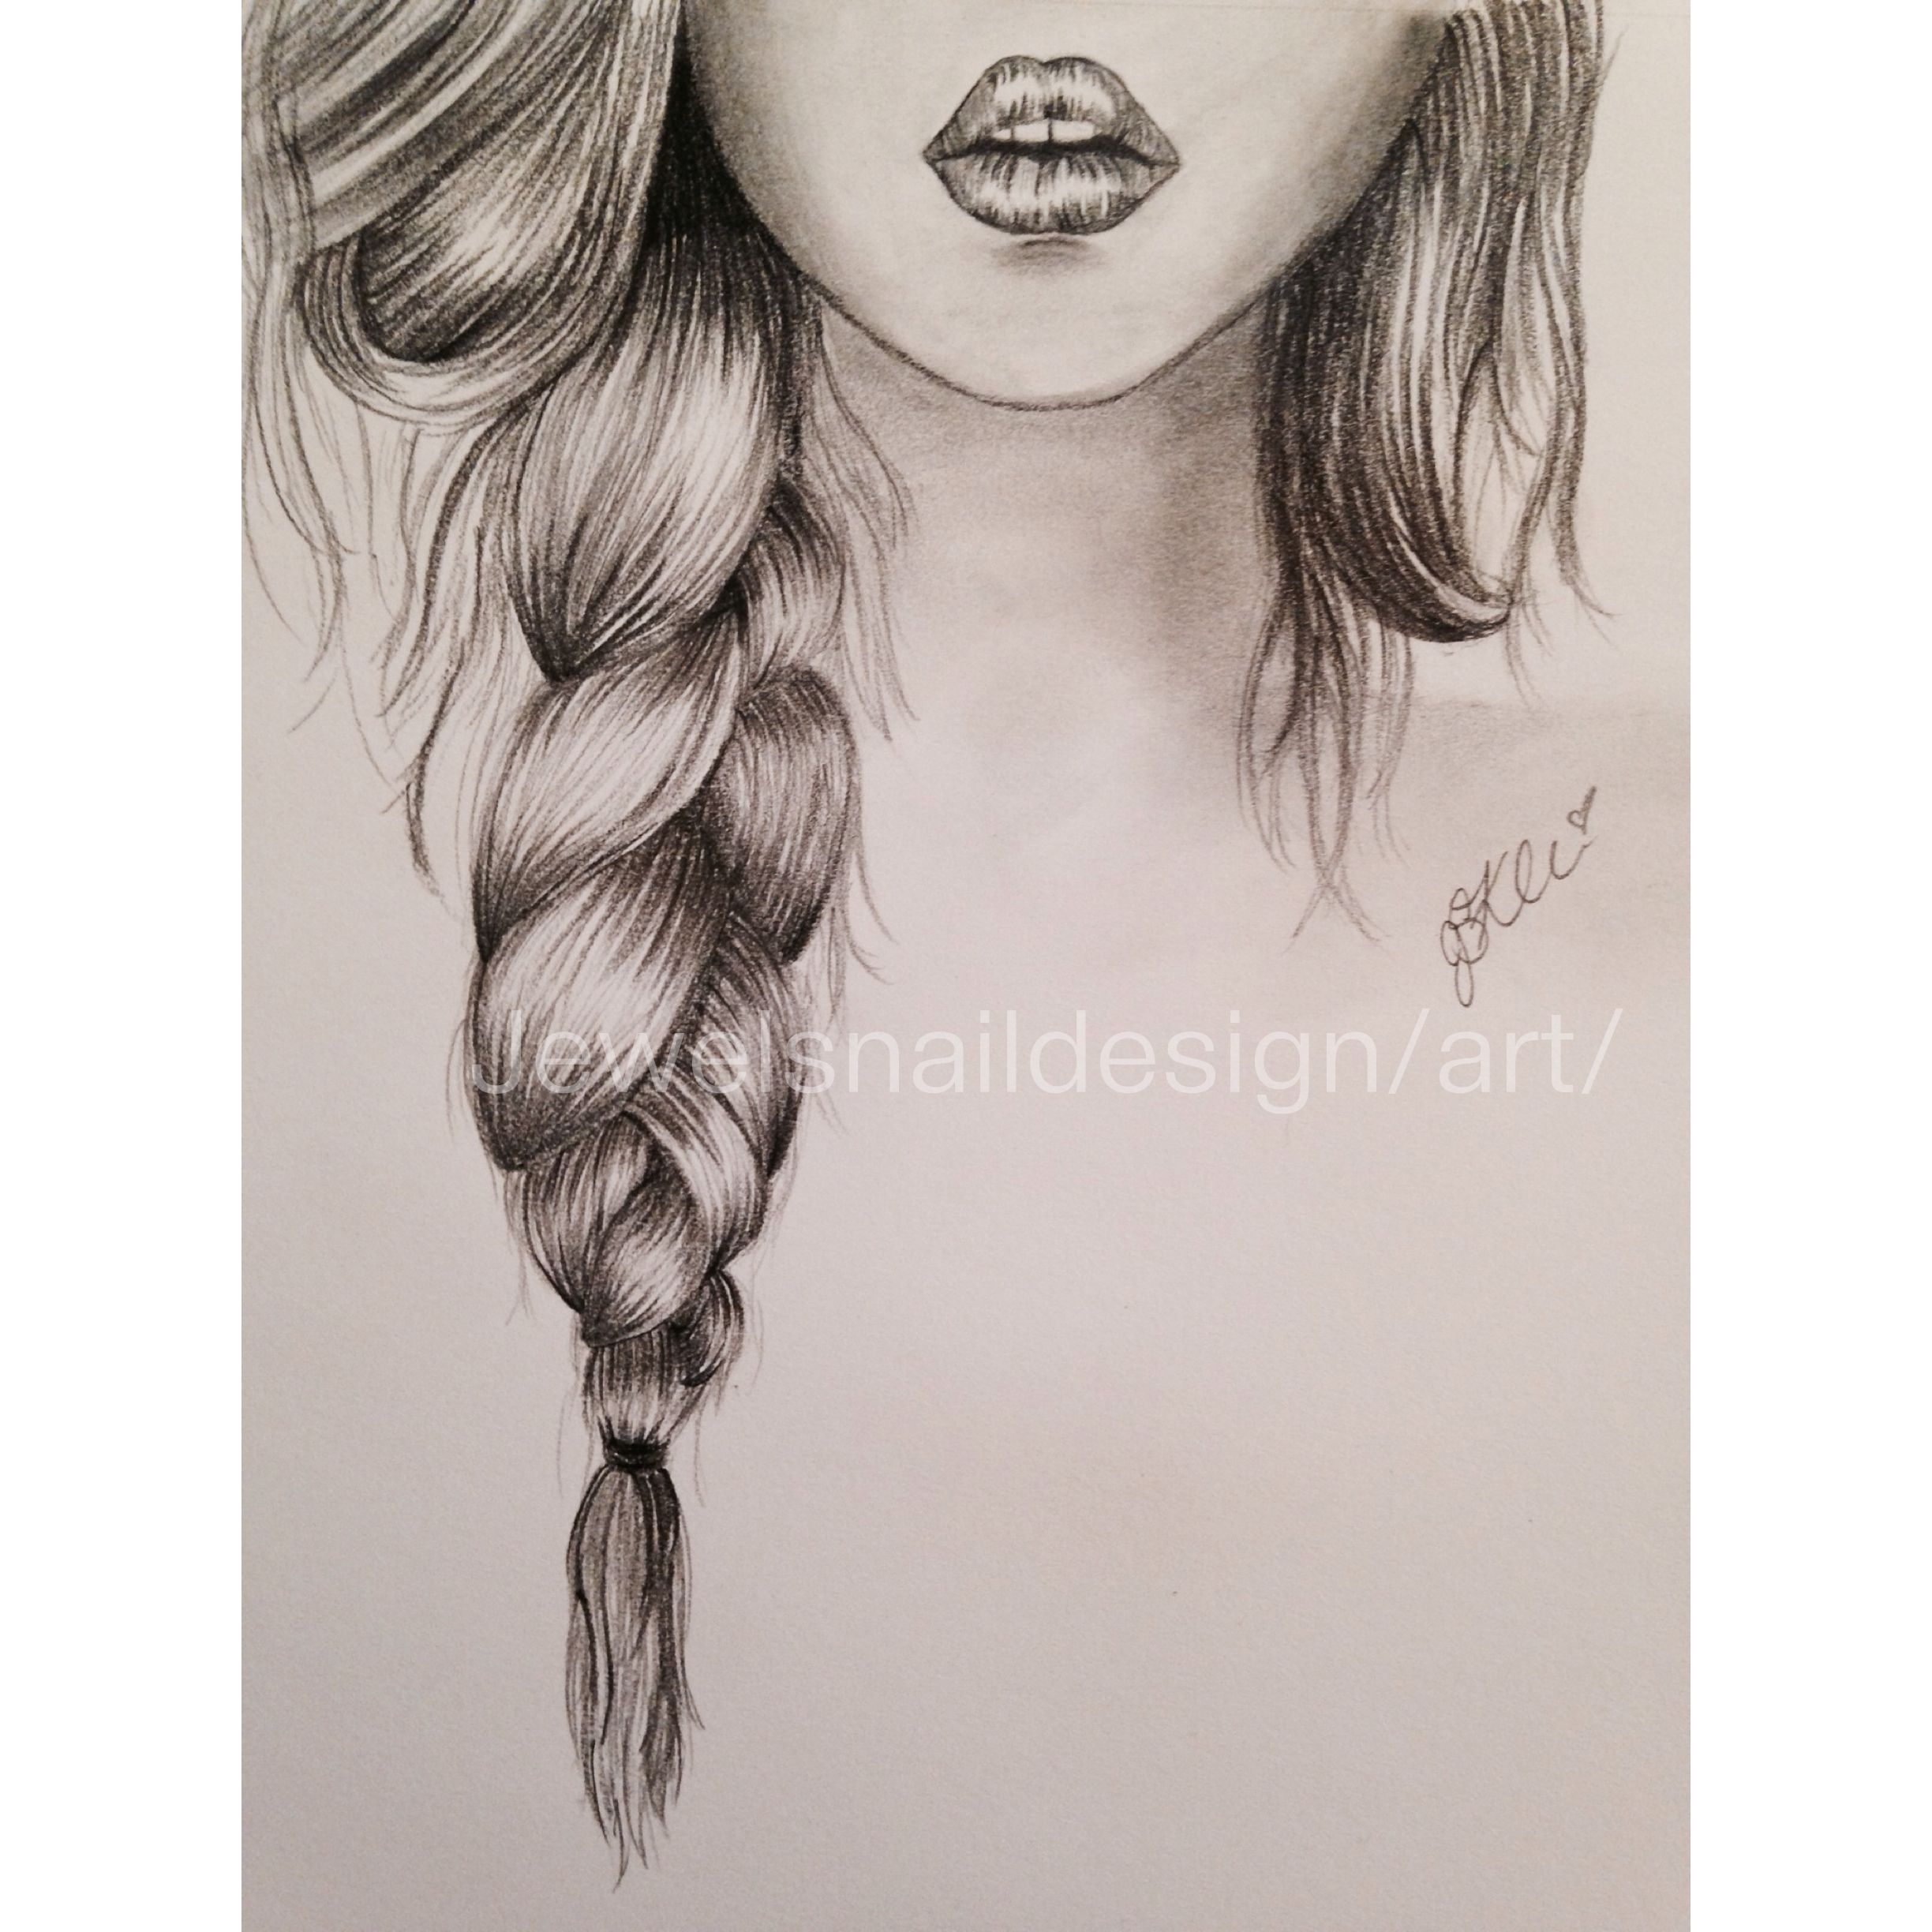 lips & braid. simple sketch sketches